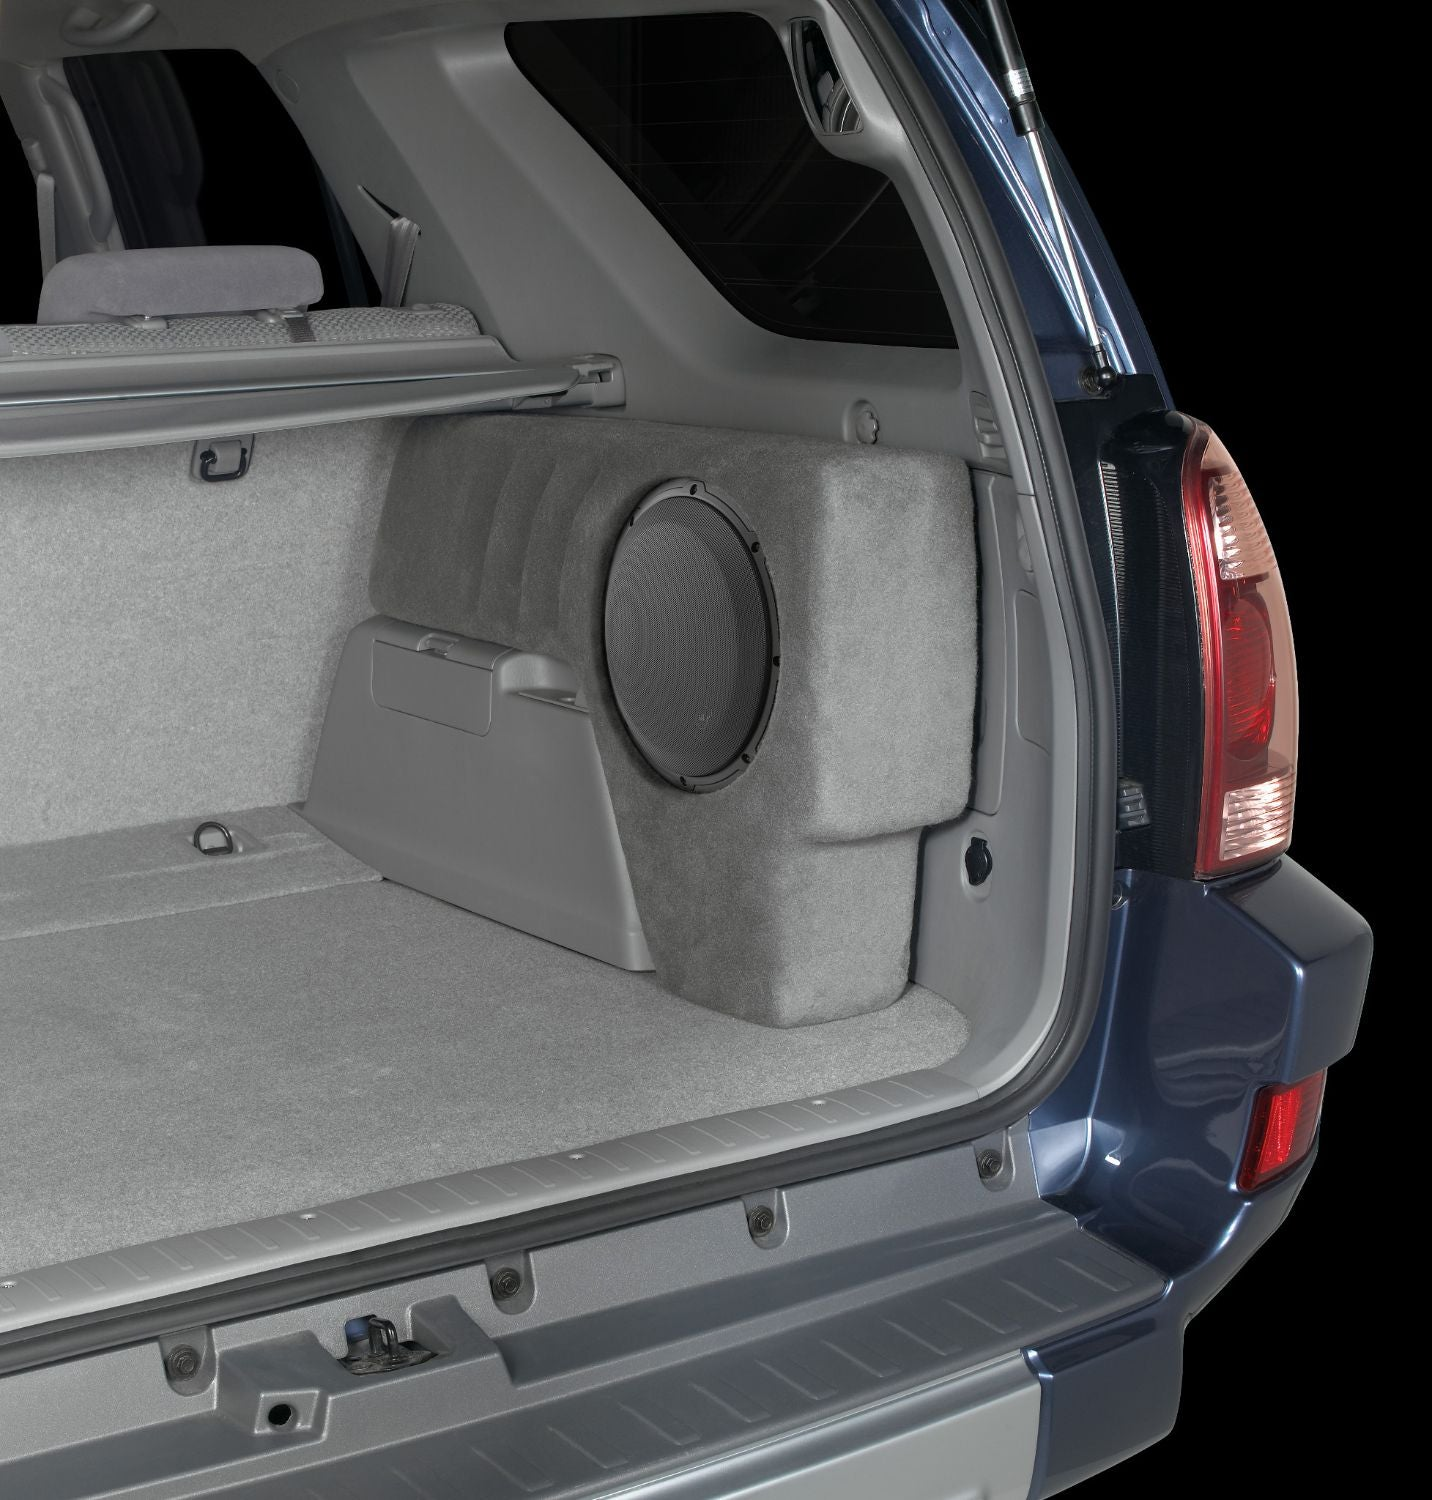 SB-T-4RNR2-10W3v3 Stealthbox Installed in Vehicle